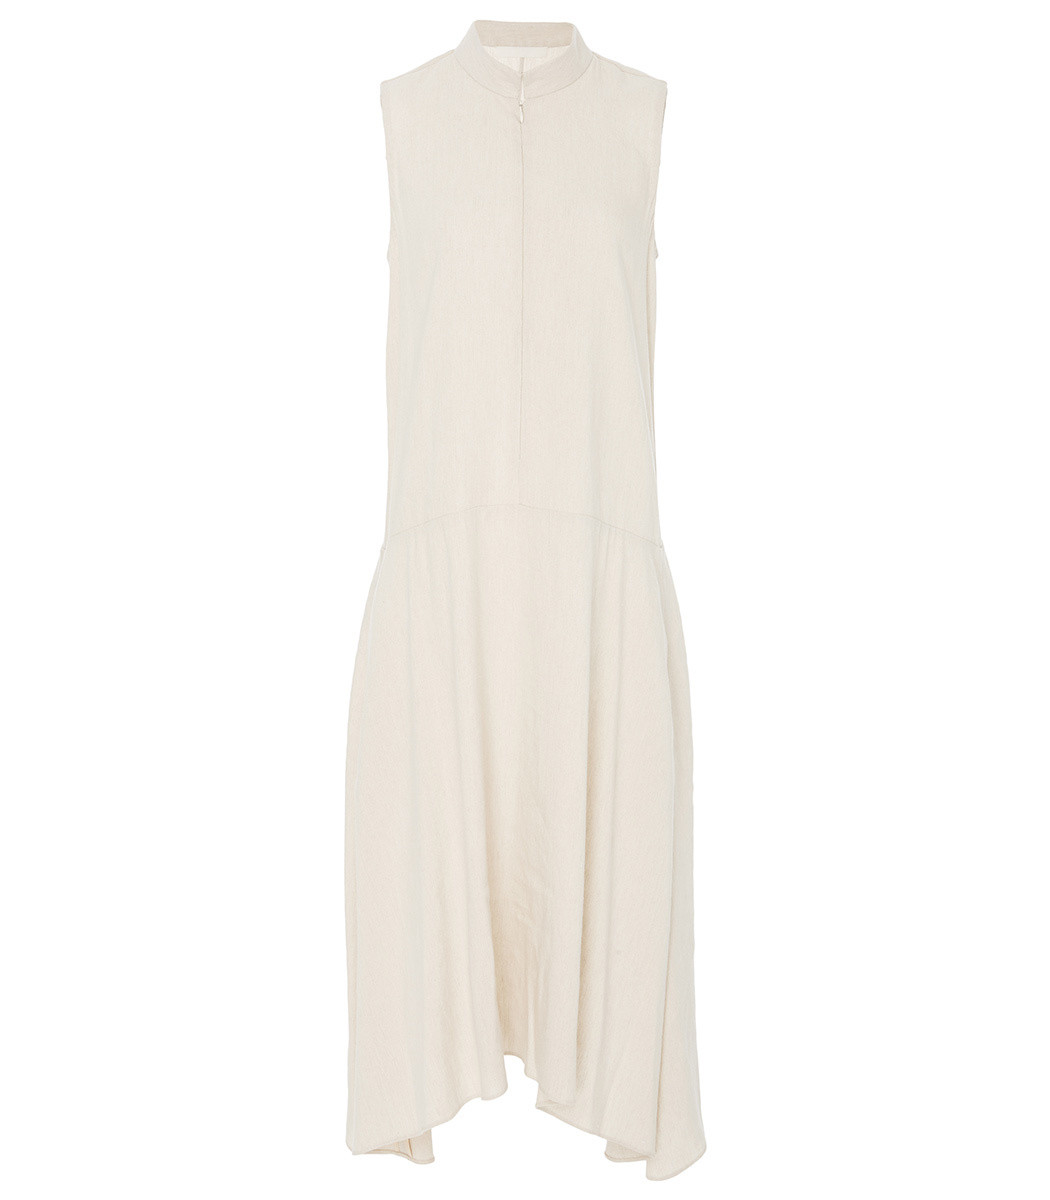 MARISA WITKIN Mock Neck Sleeveless Dress in Natural